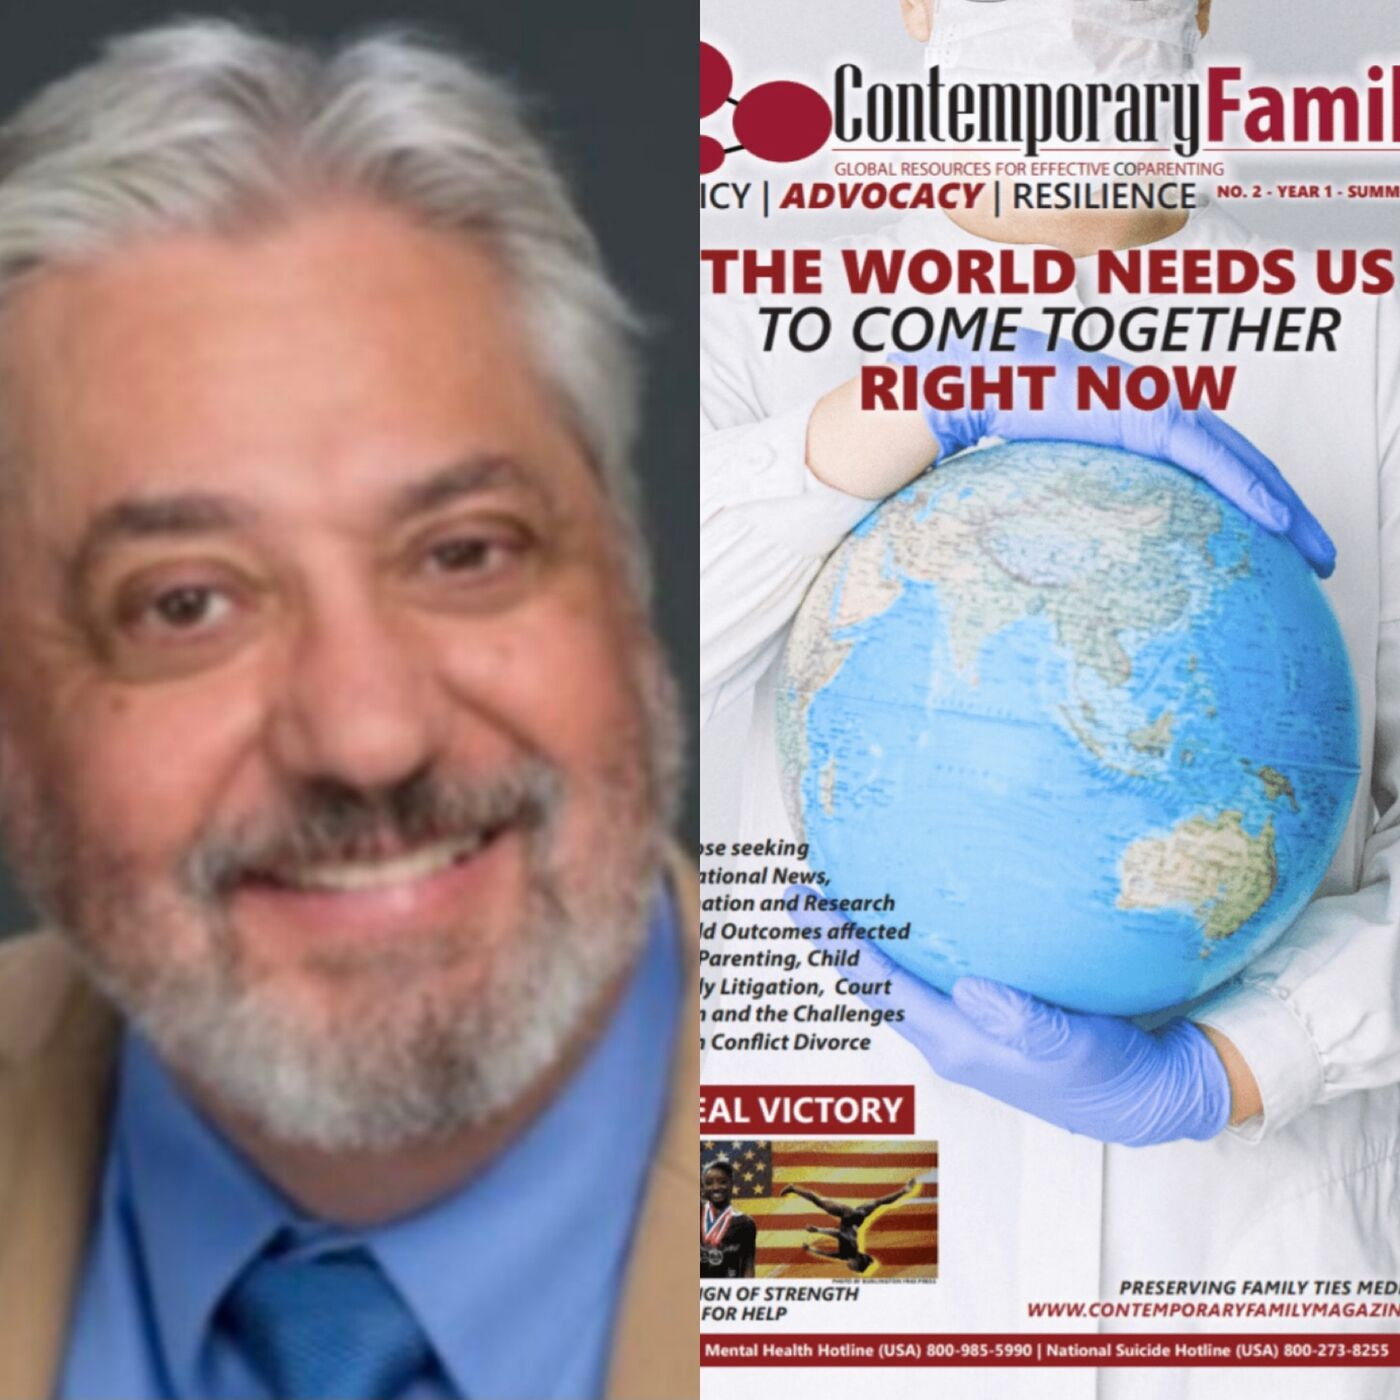 Dr. Mark Roseman, Author, Challenges To Preserving Family Ties And Contemporary Family Magazine